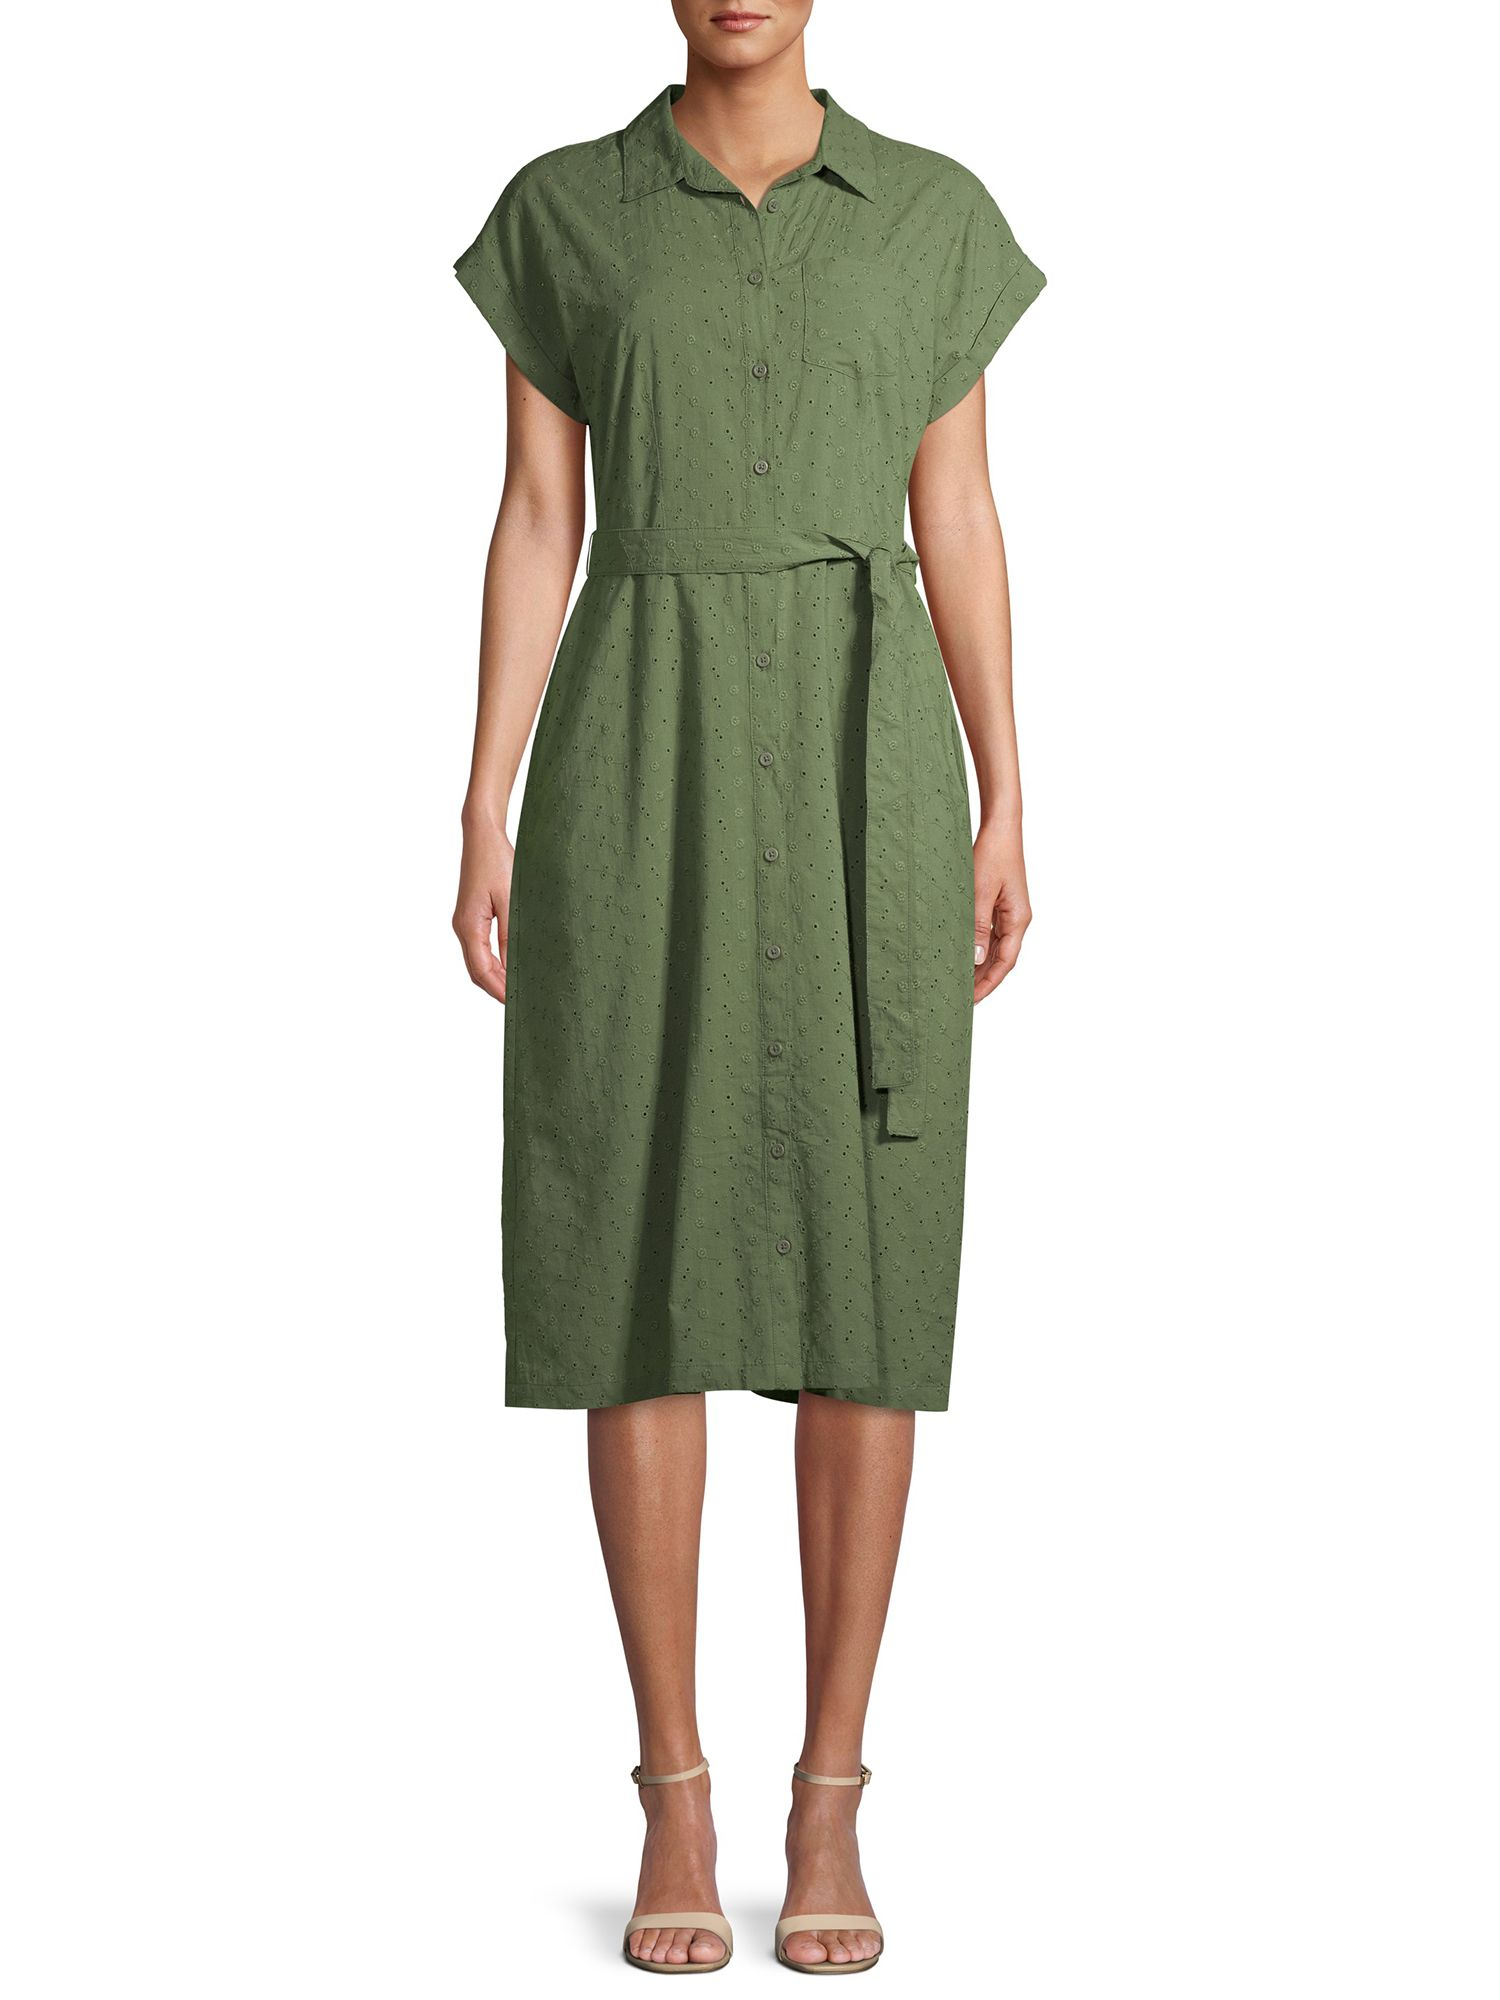 46+ Belted midi shirt dress trends